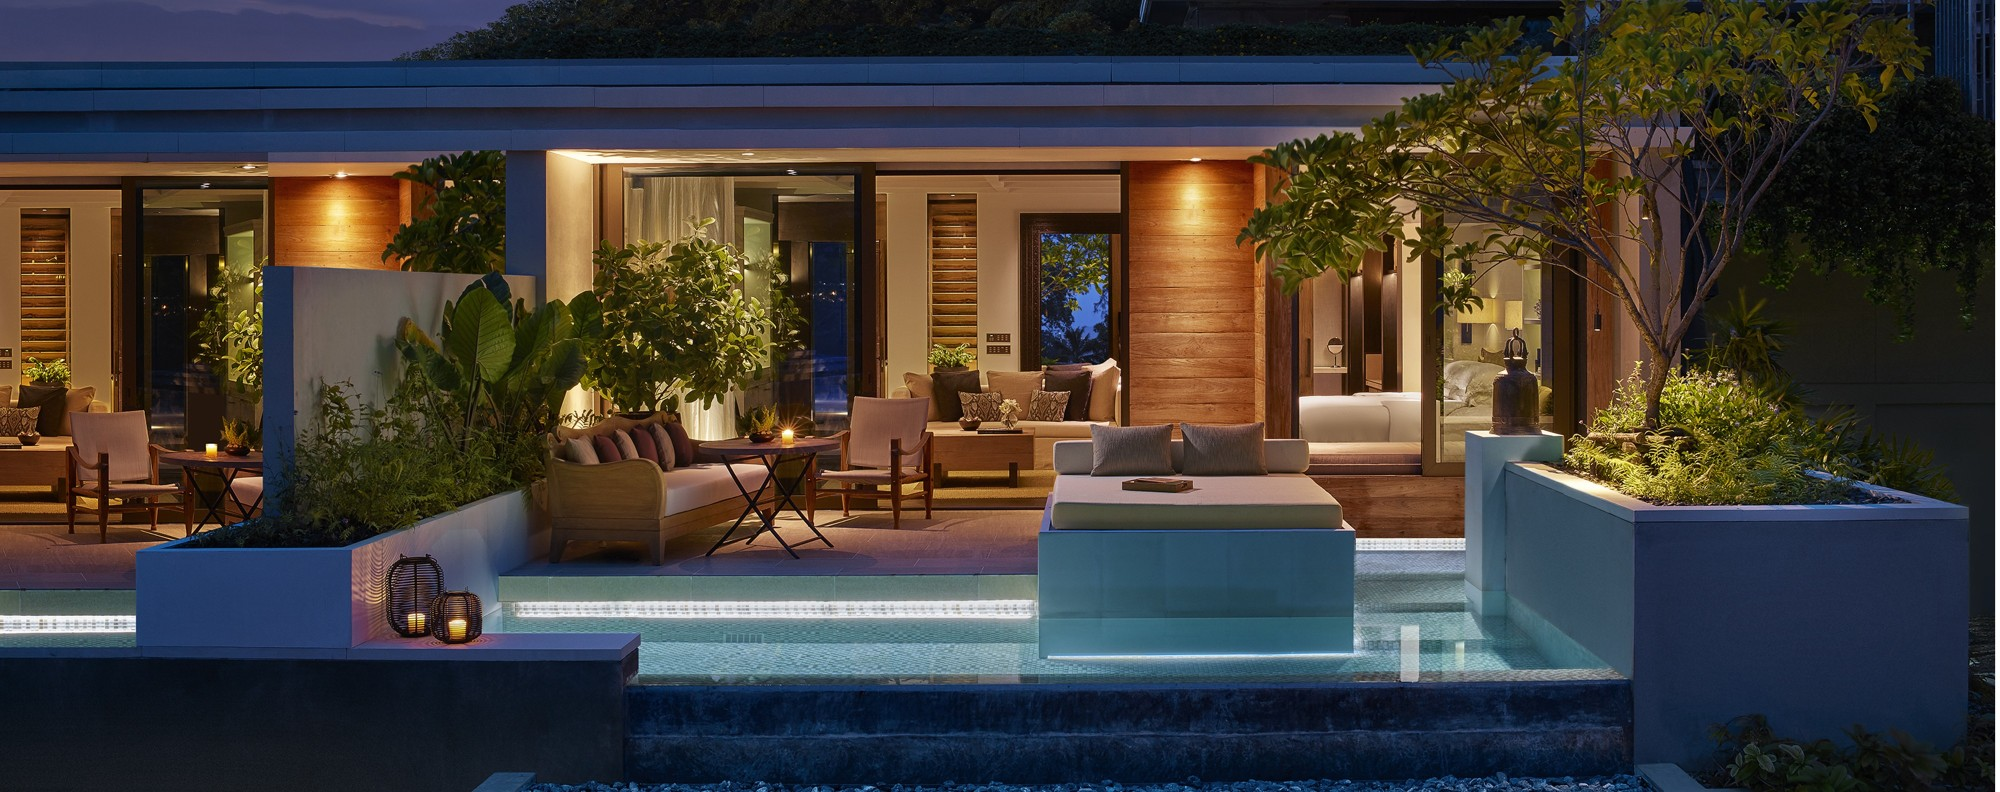 Rosewood Phuket's Oceanview Pool Pavilion.